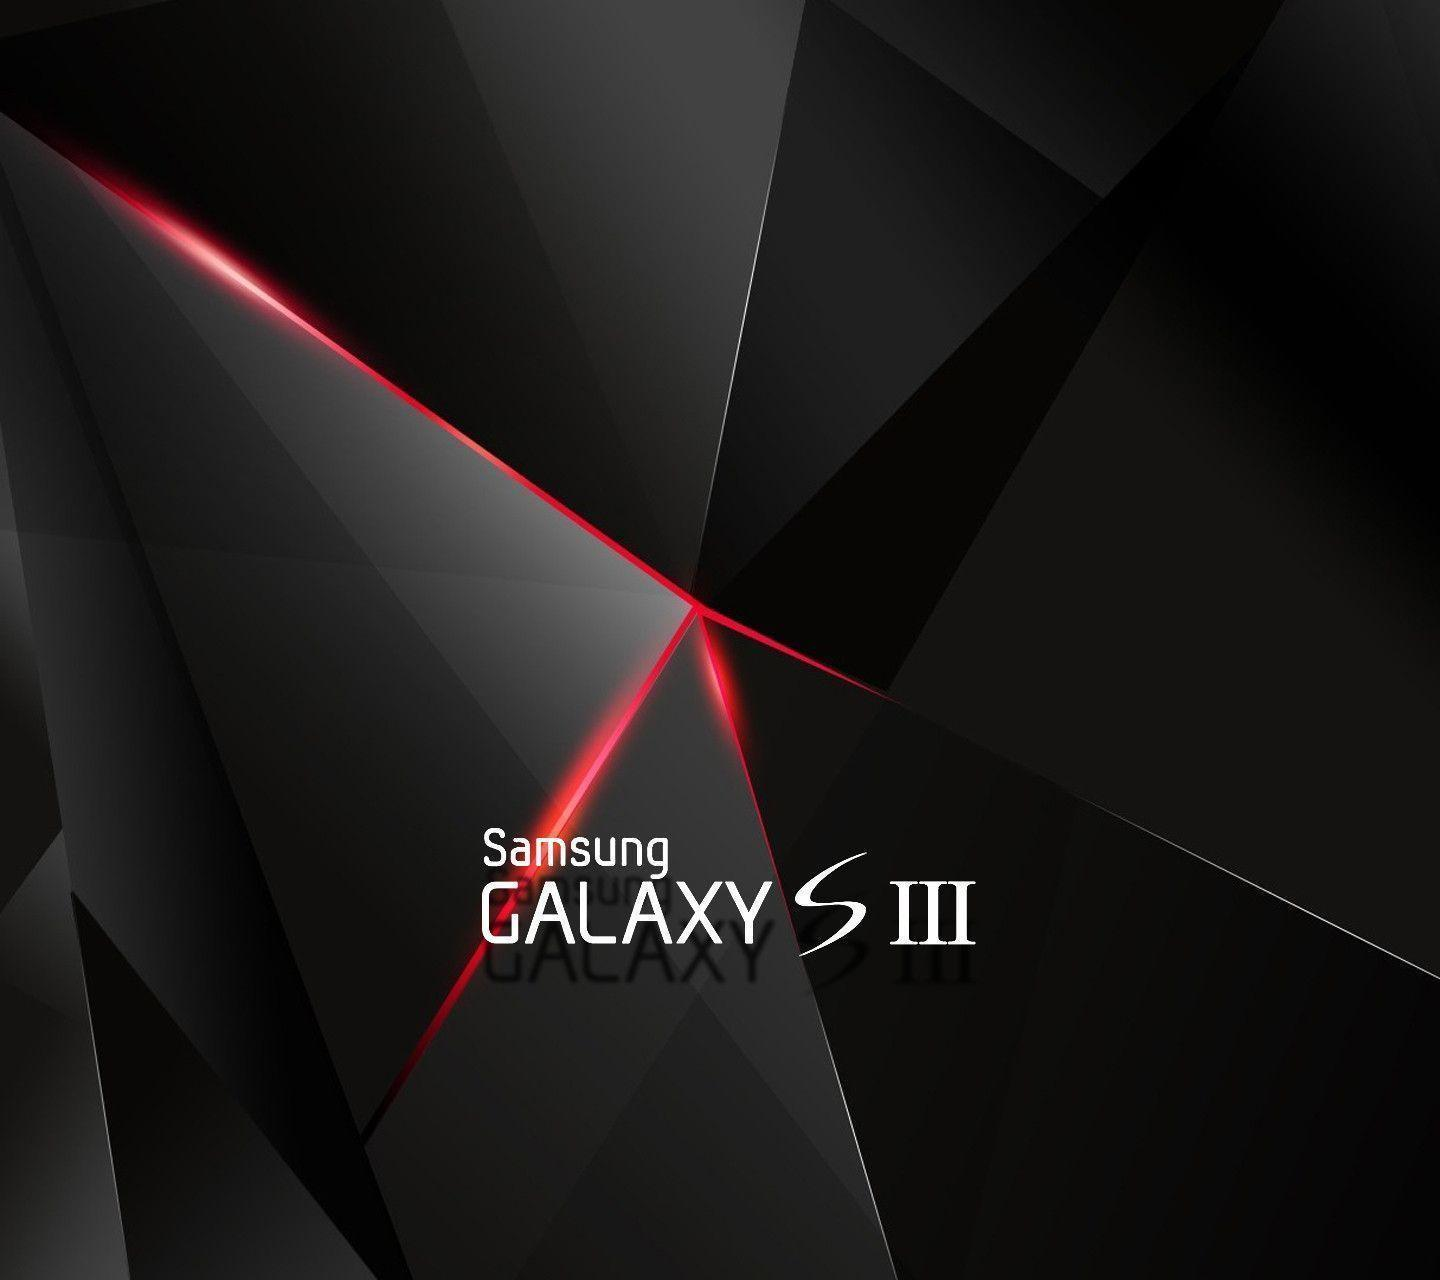 download Samsung Galaxy S3 Wallpapers Space [1440x1280] for 1440x1280